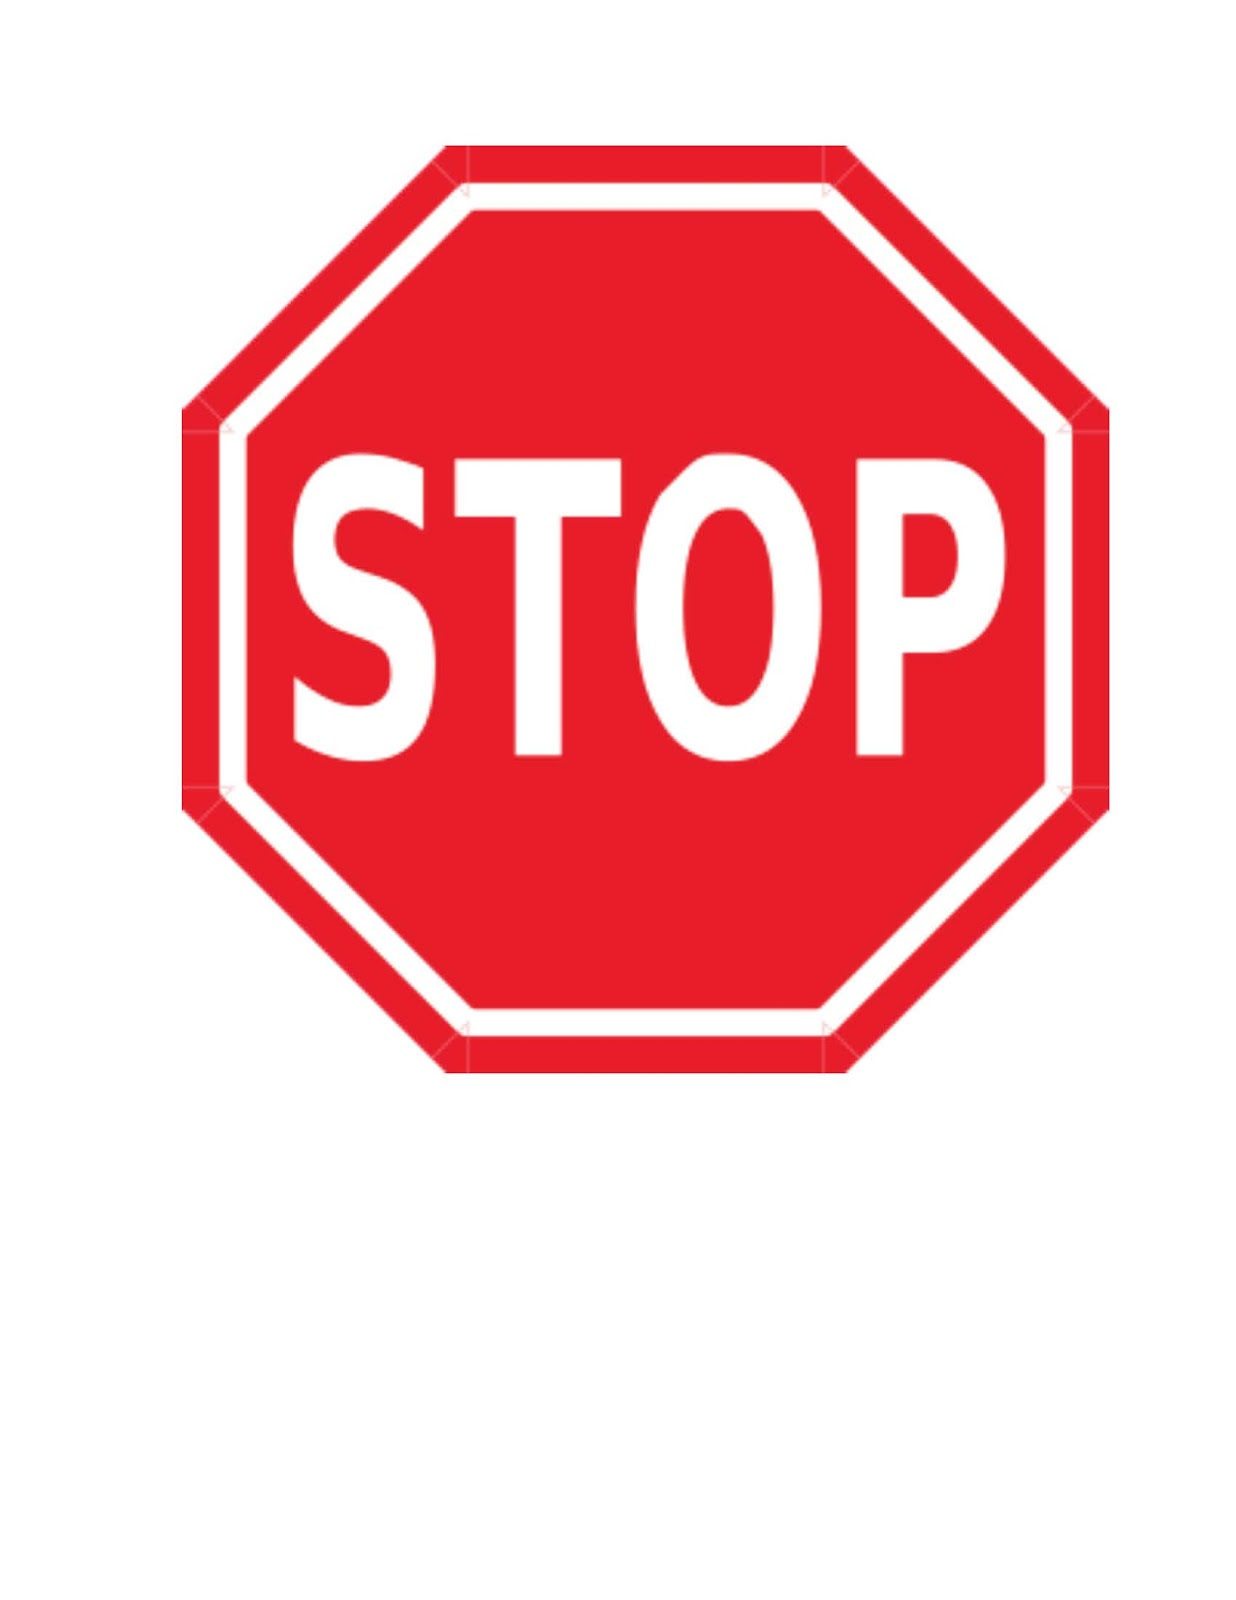 Free Stop Sign Image, Download Free Clip Art, Free Clip Art.